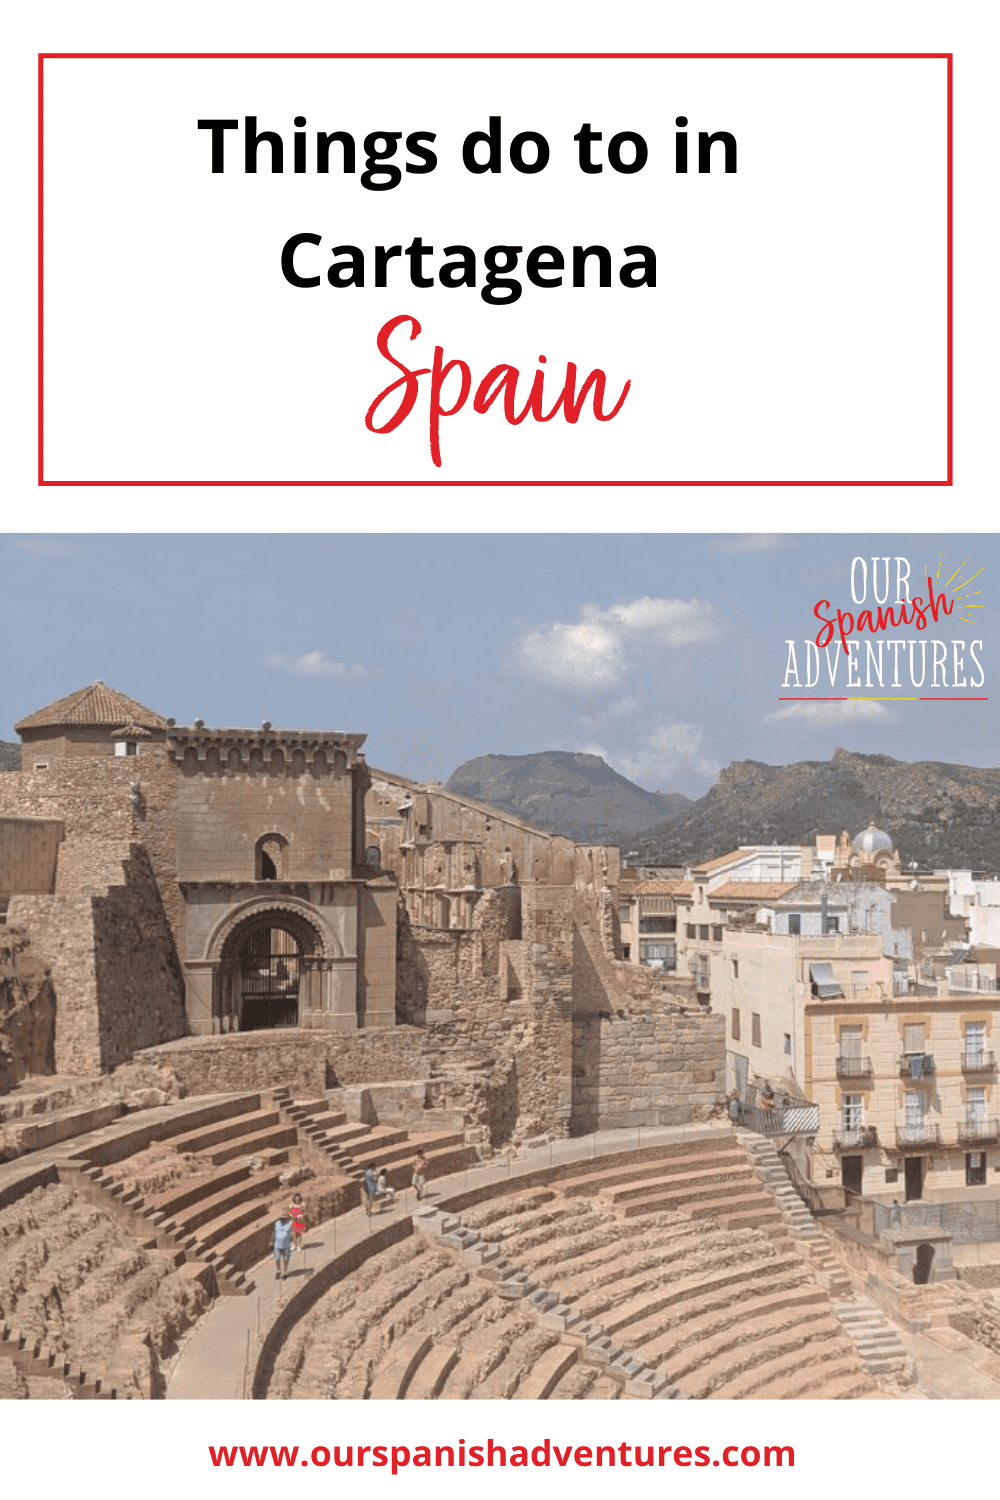 Things to do in Cartagena, Spain | Our Spanish Adventures